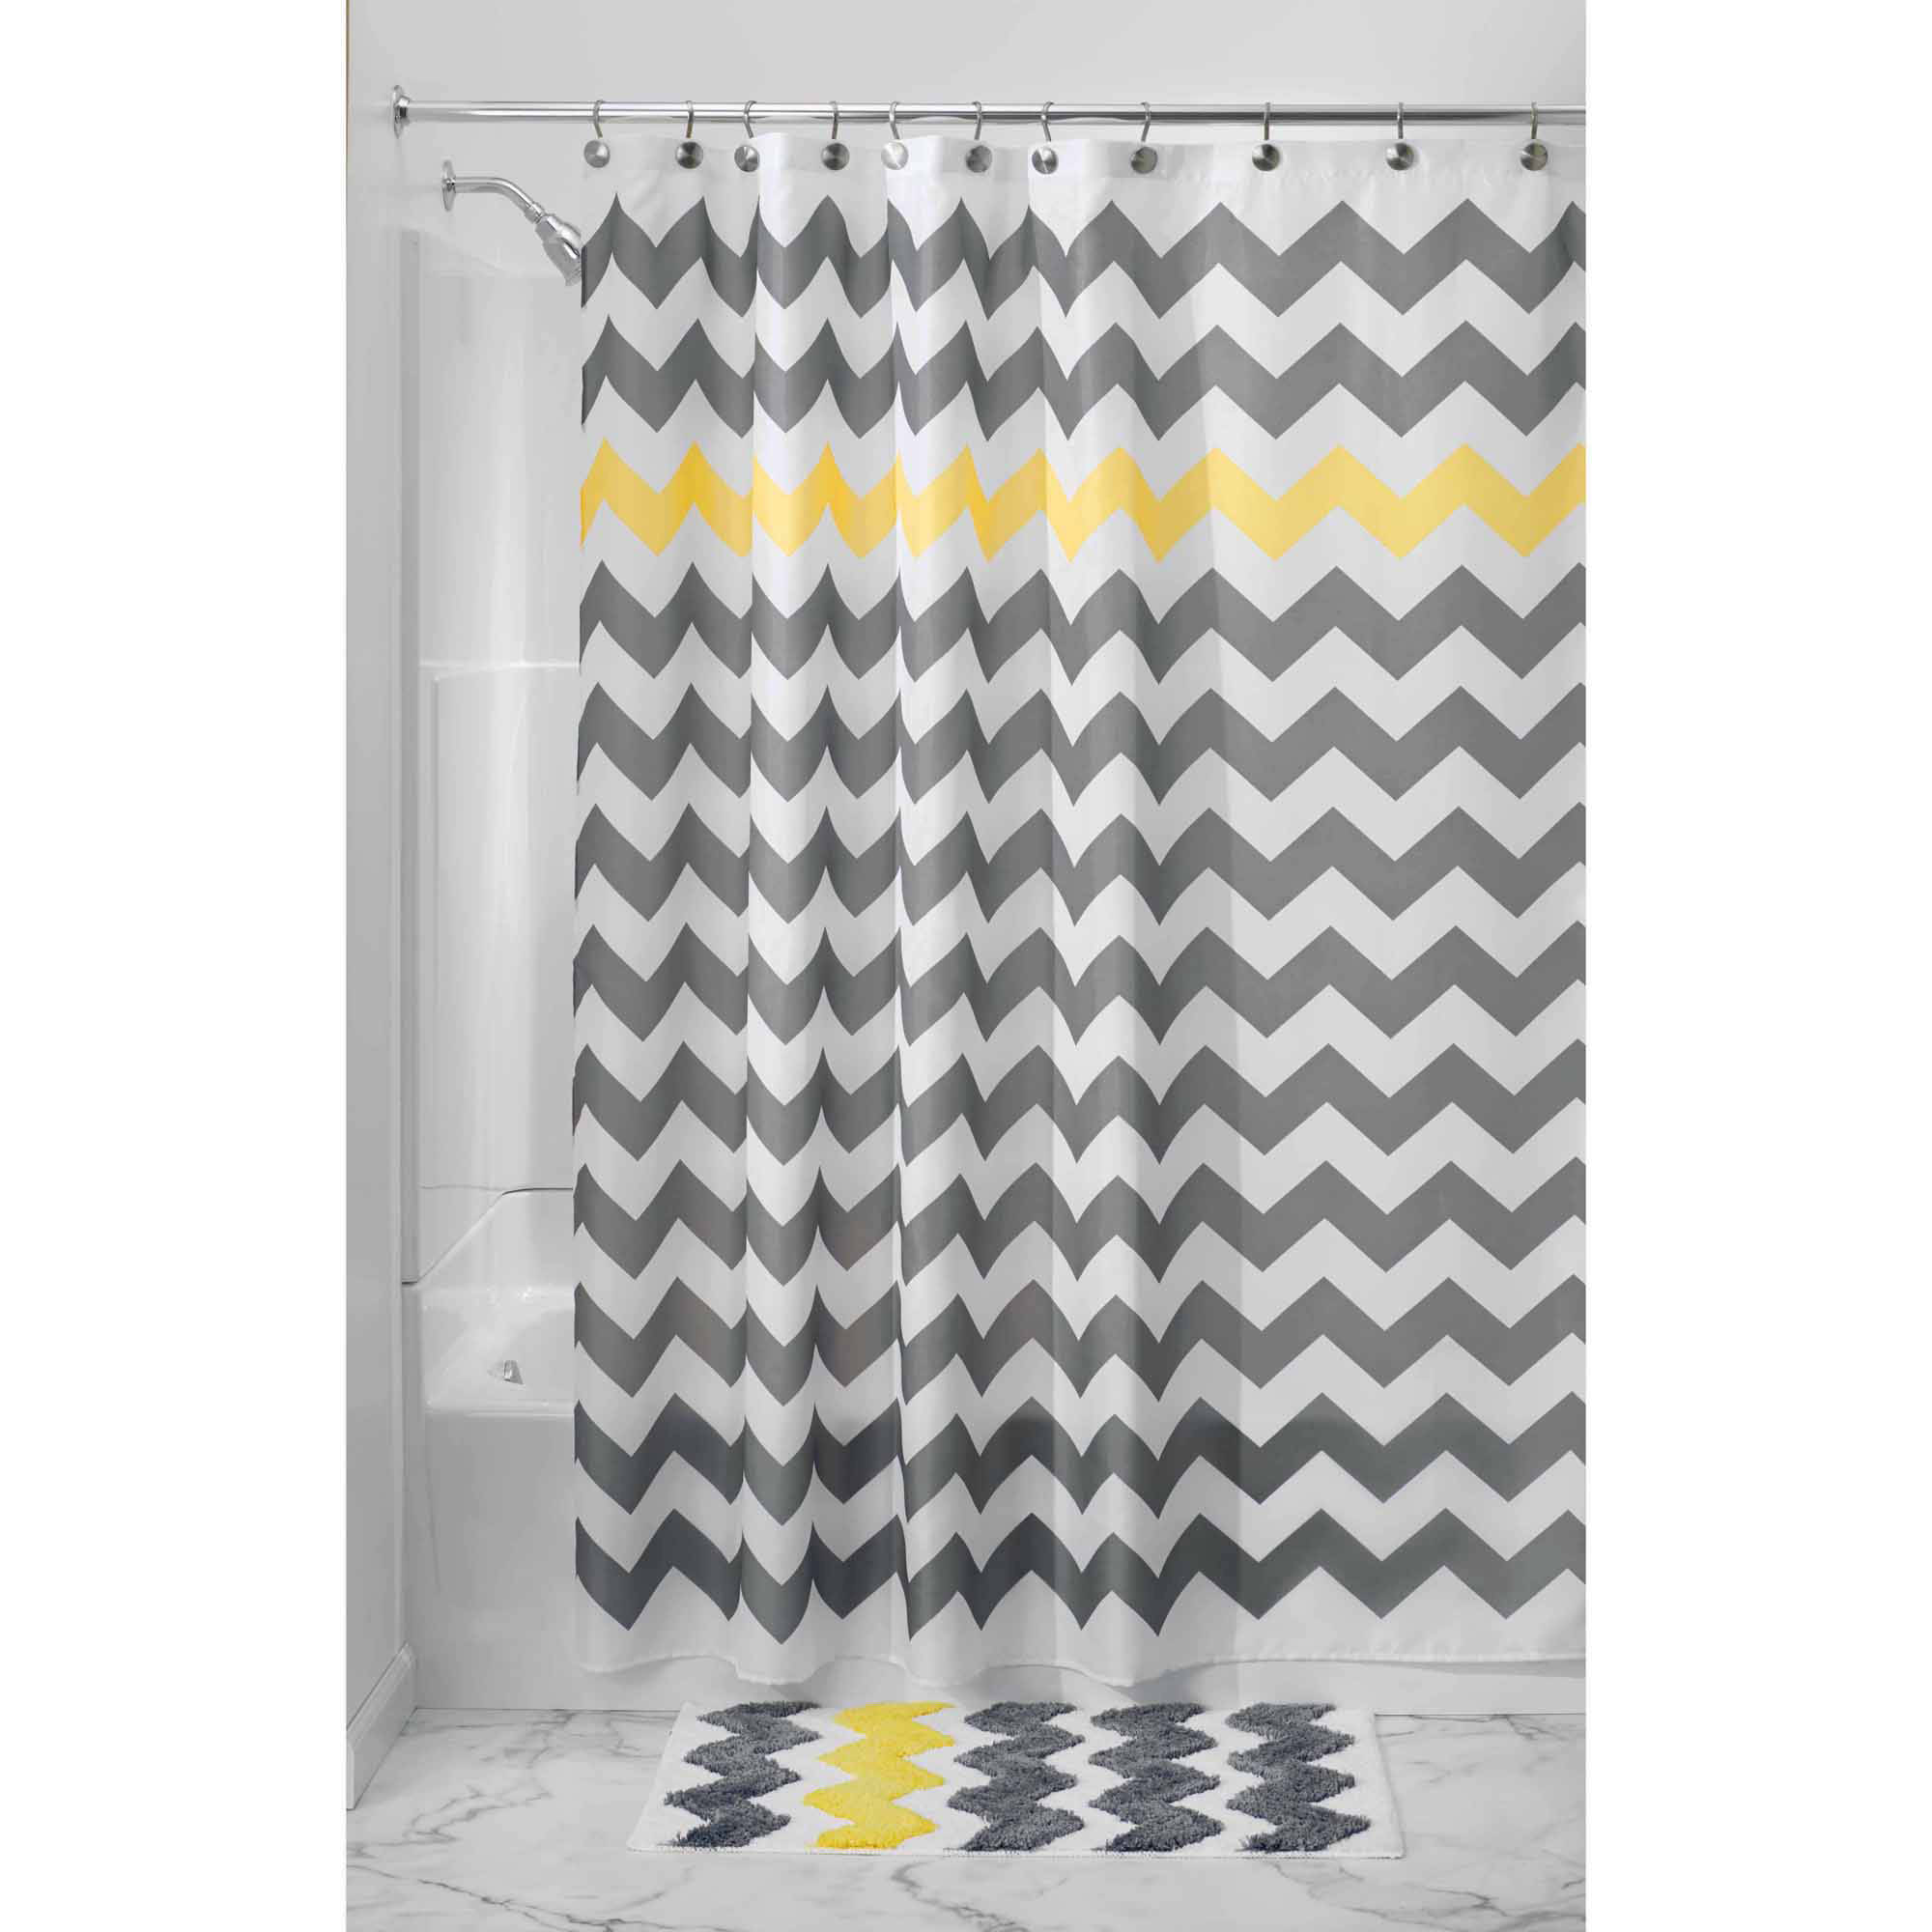 "InterDesign Chevron Fabric Shower Curtain, 72"" x 72"", Various colors"